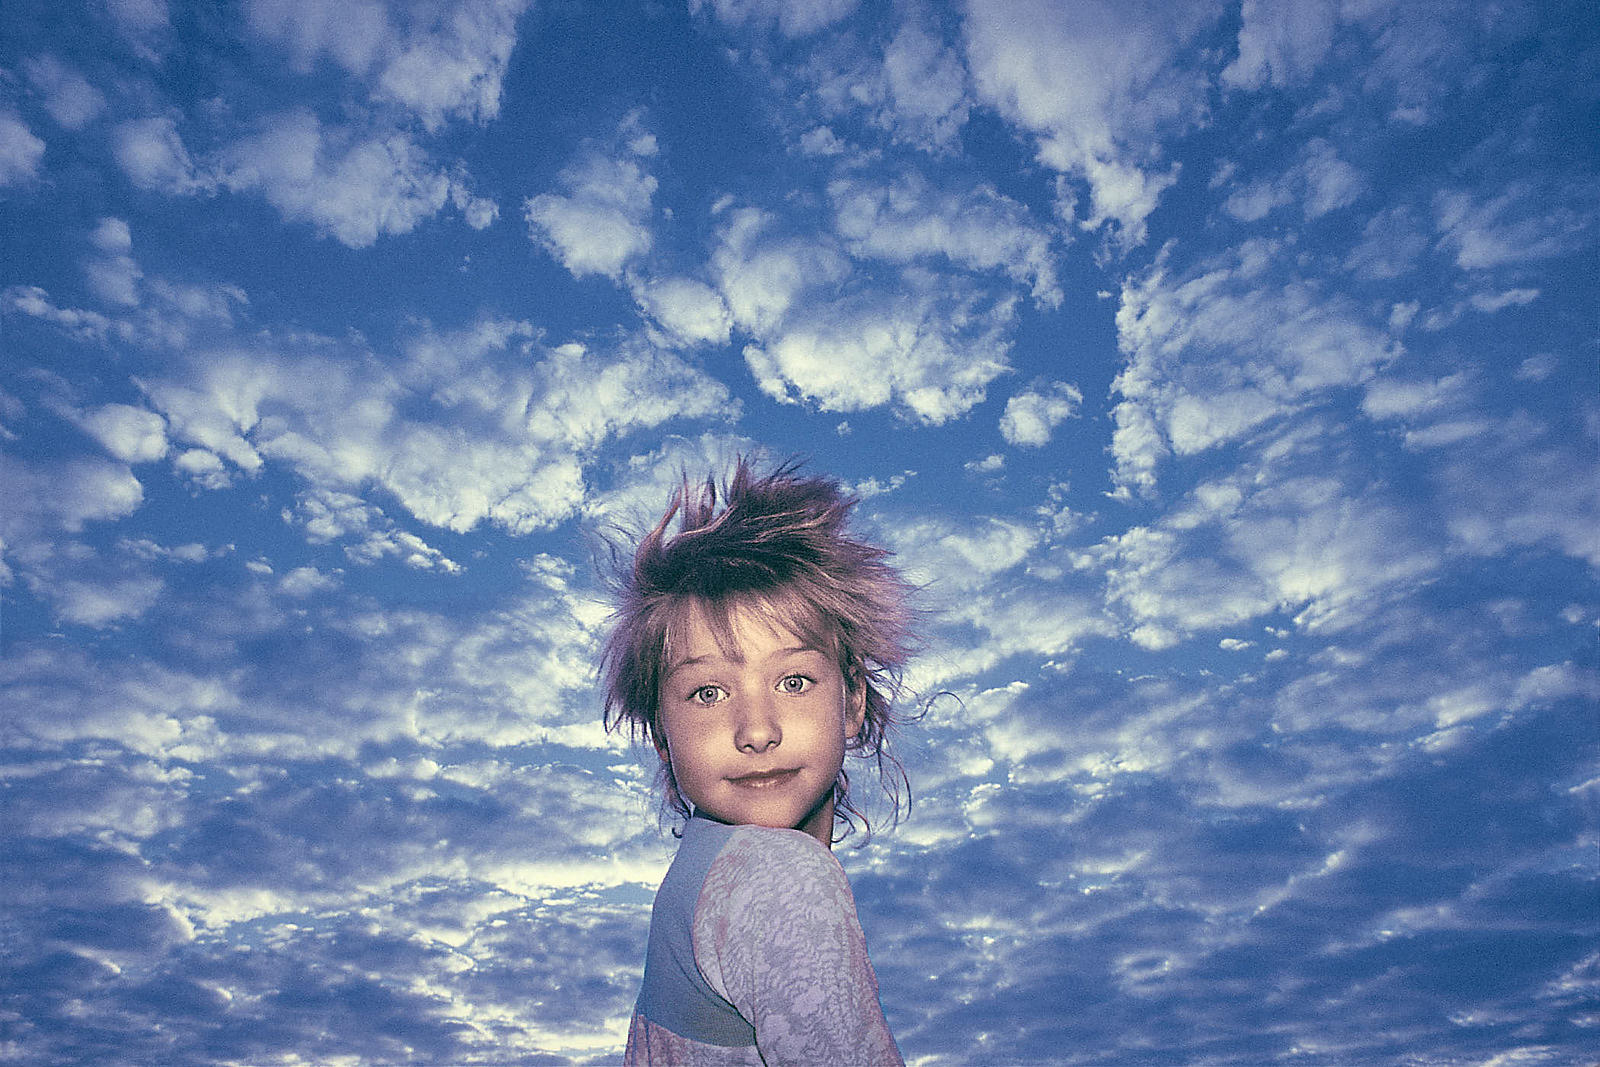 01-portrait-of-morning-child-against-a-deep-blue-sunrise-sky-skattered-with-clouds